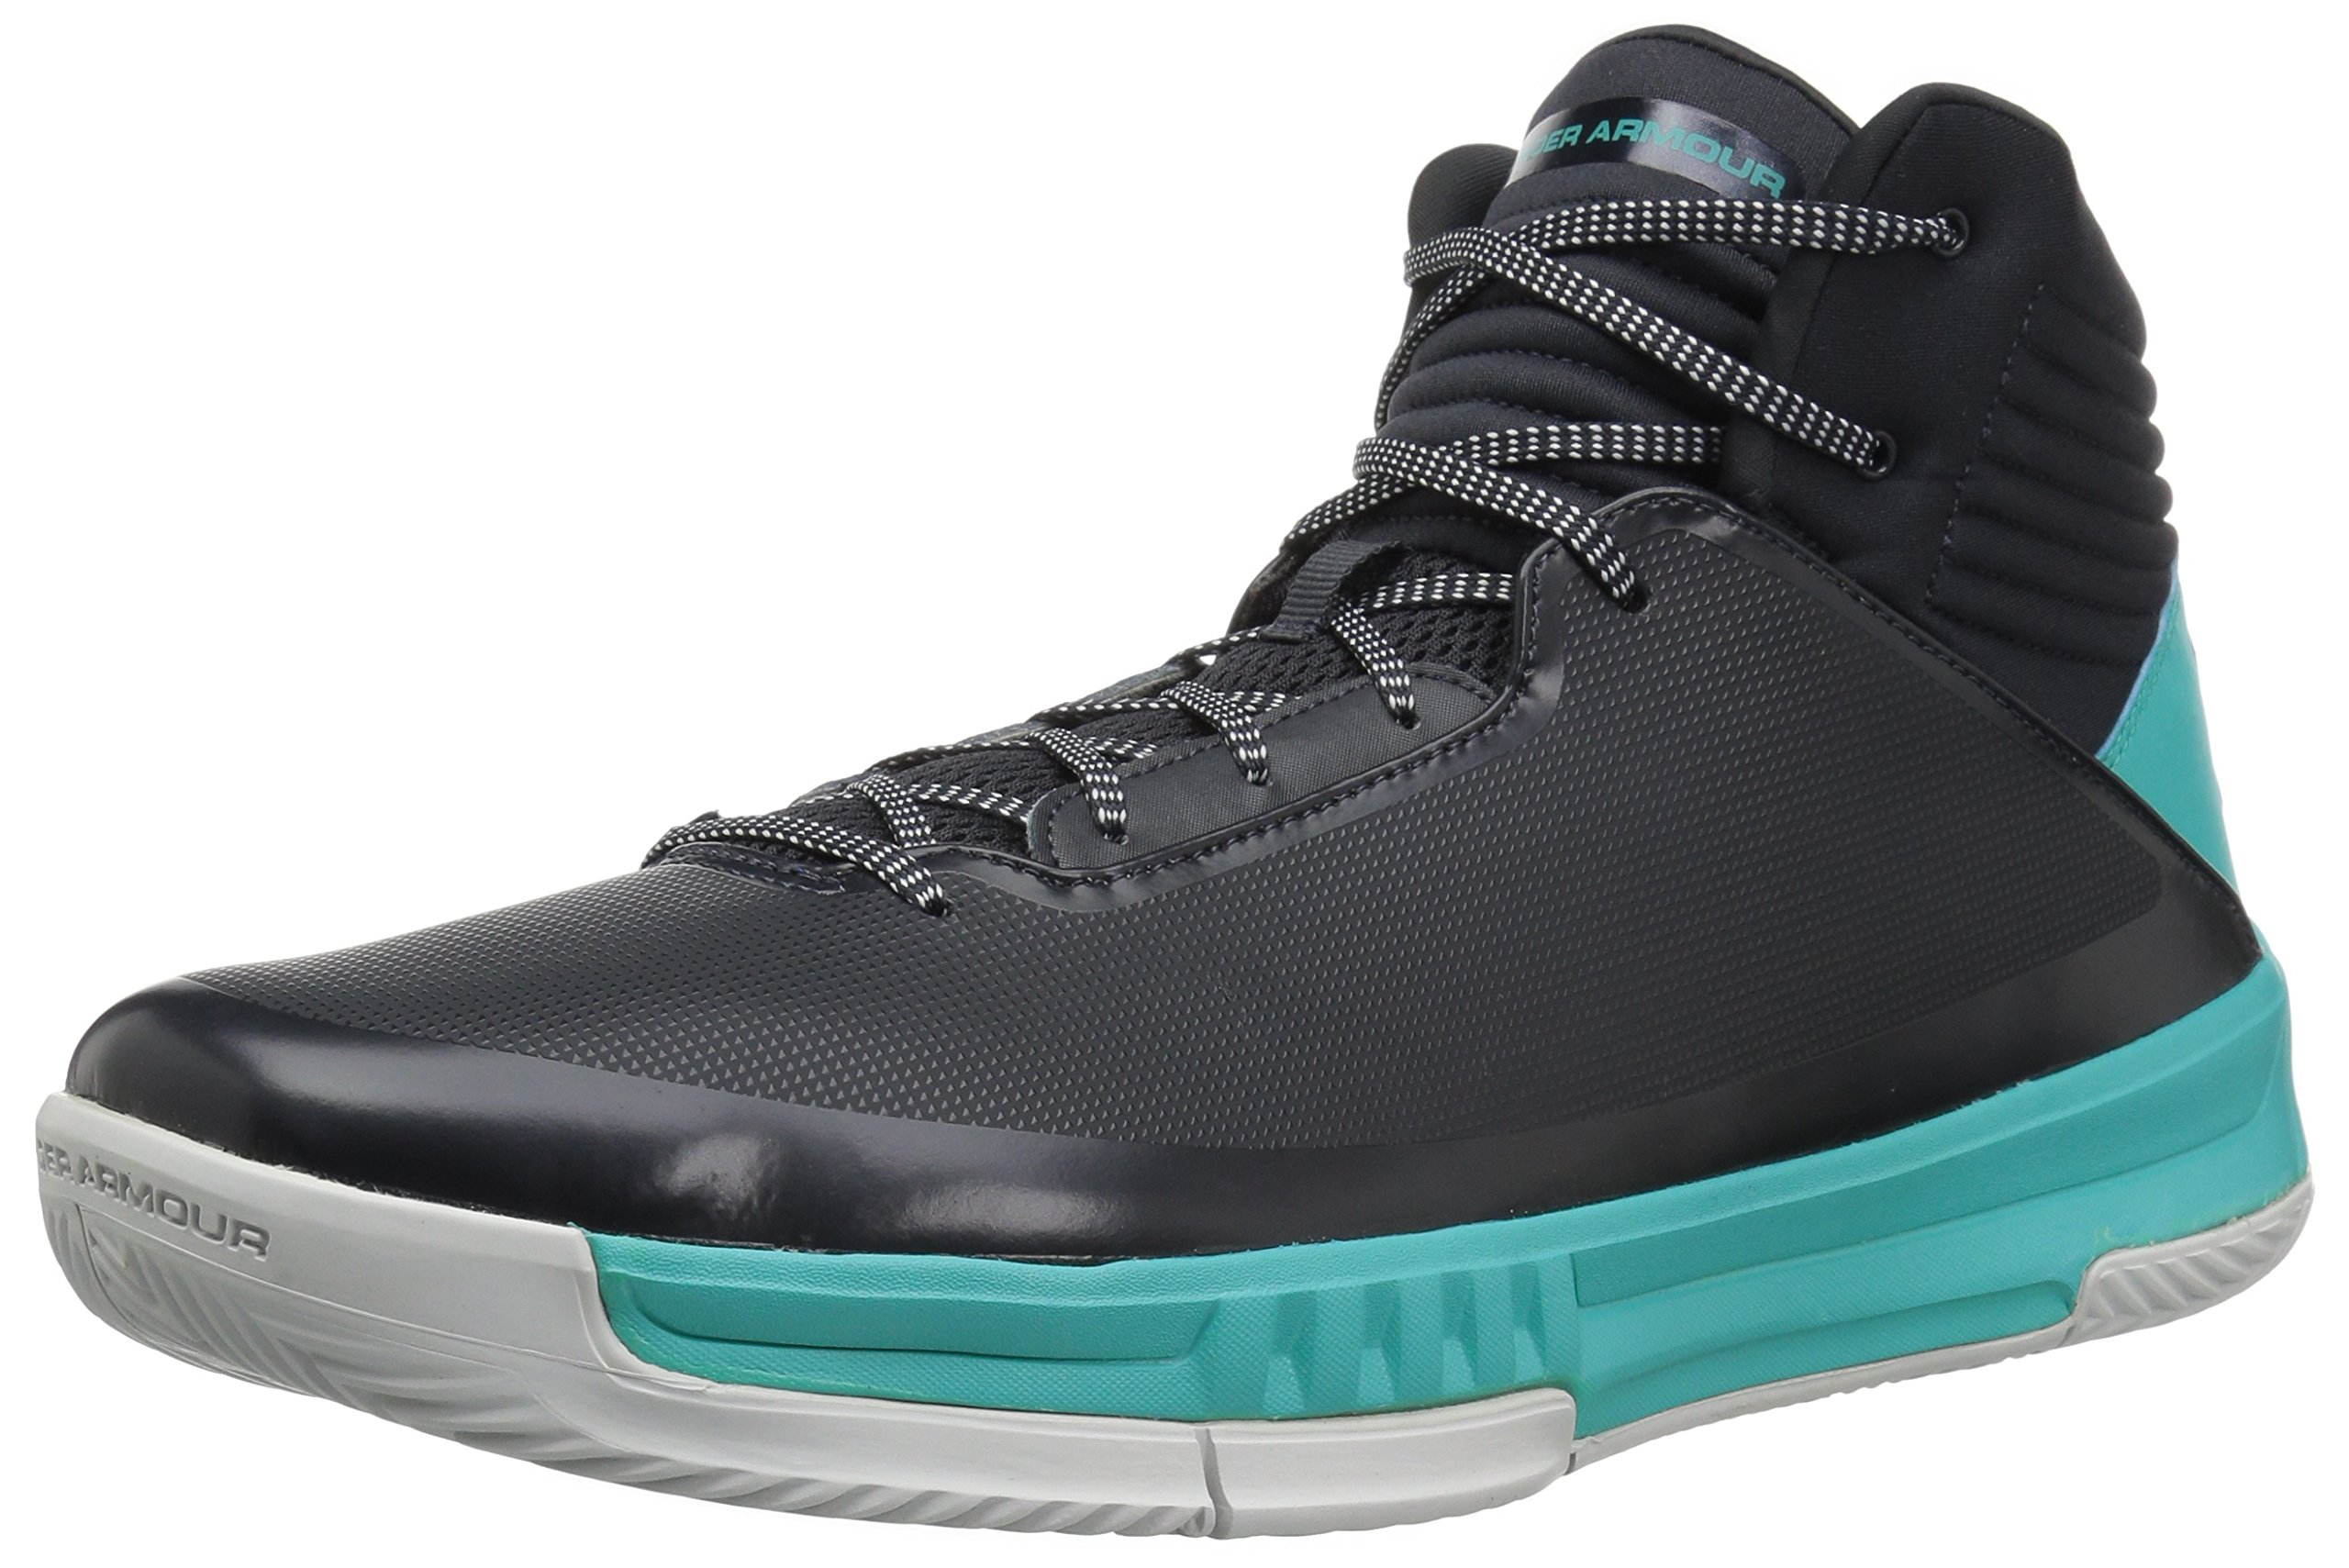 buy popular 28ad2 3ae2b Galleon - Under Armour Men s Lockdown 2 Basketball Shoe, Anthracite  (105) Teal Punch, 13